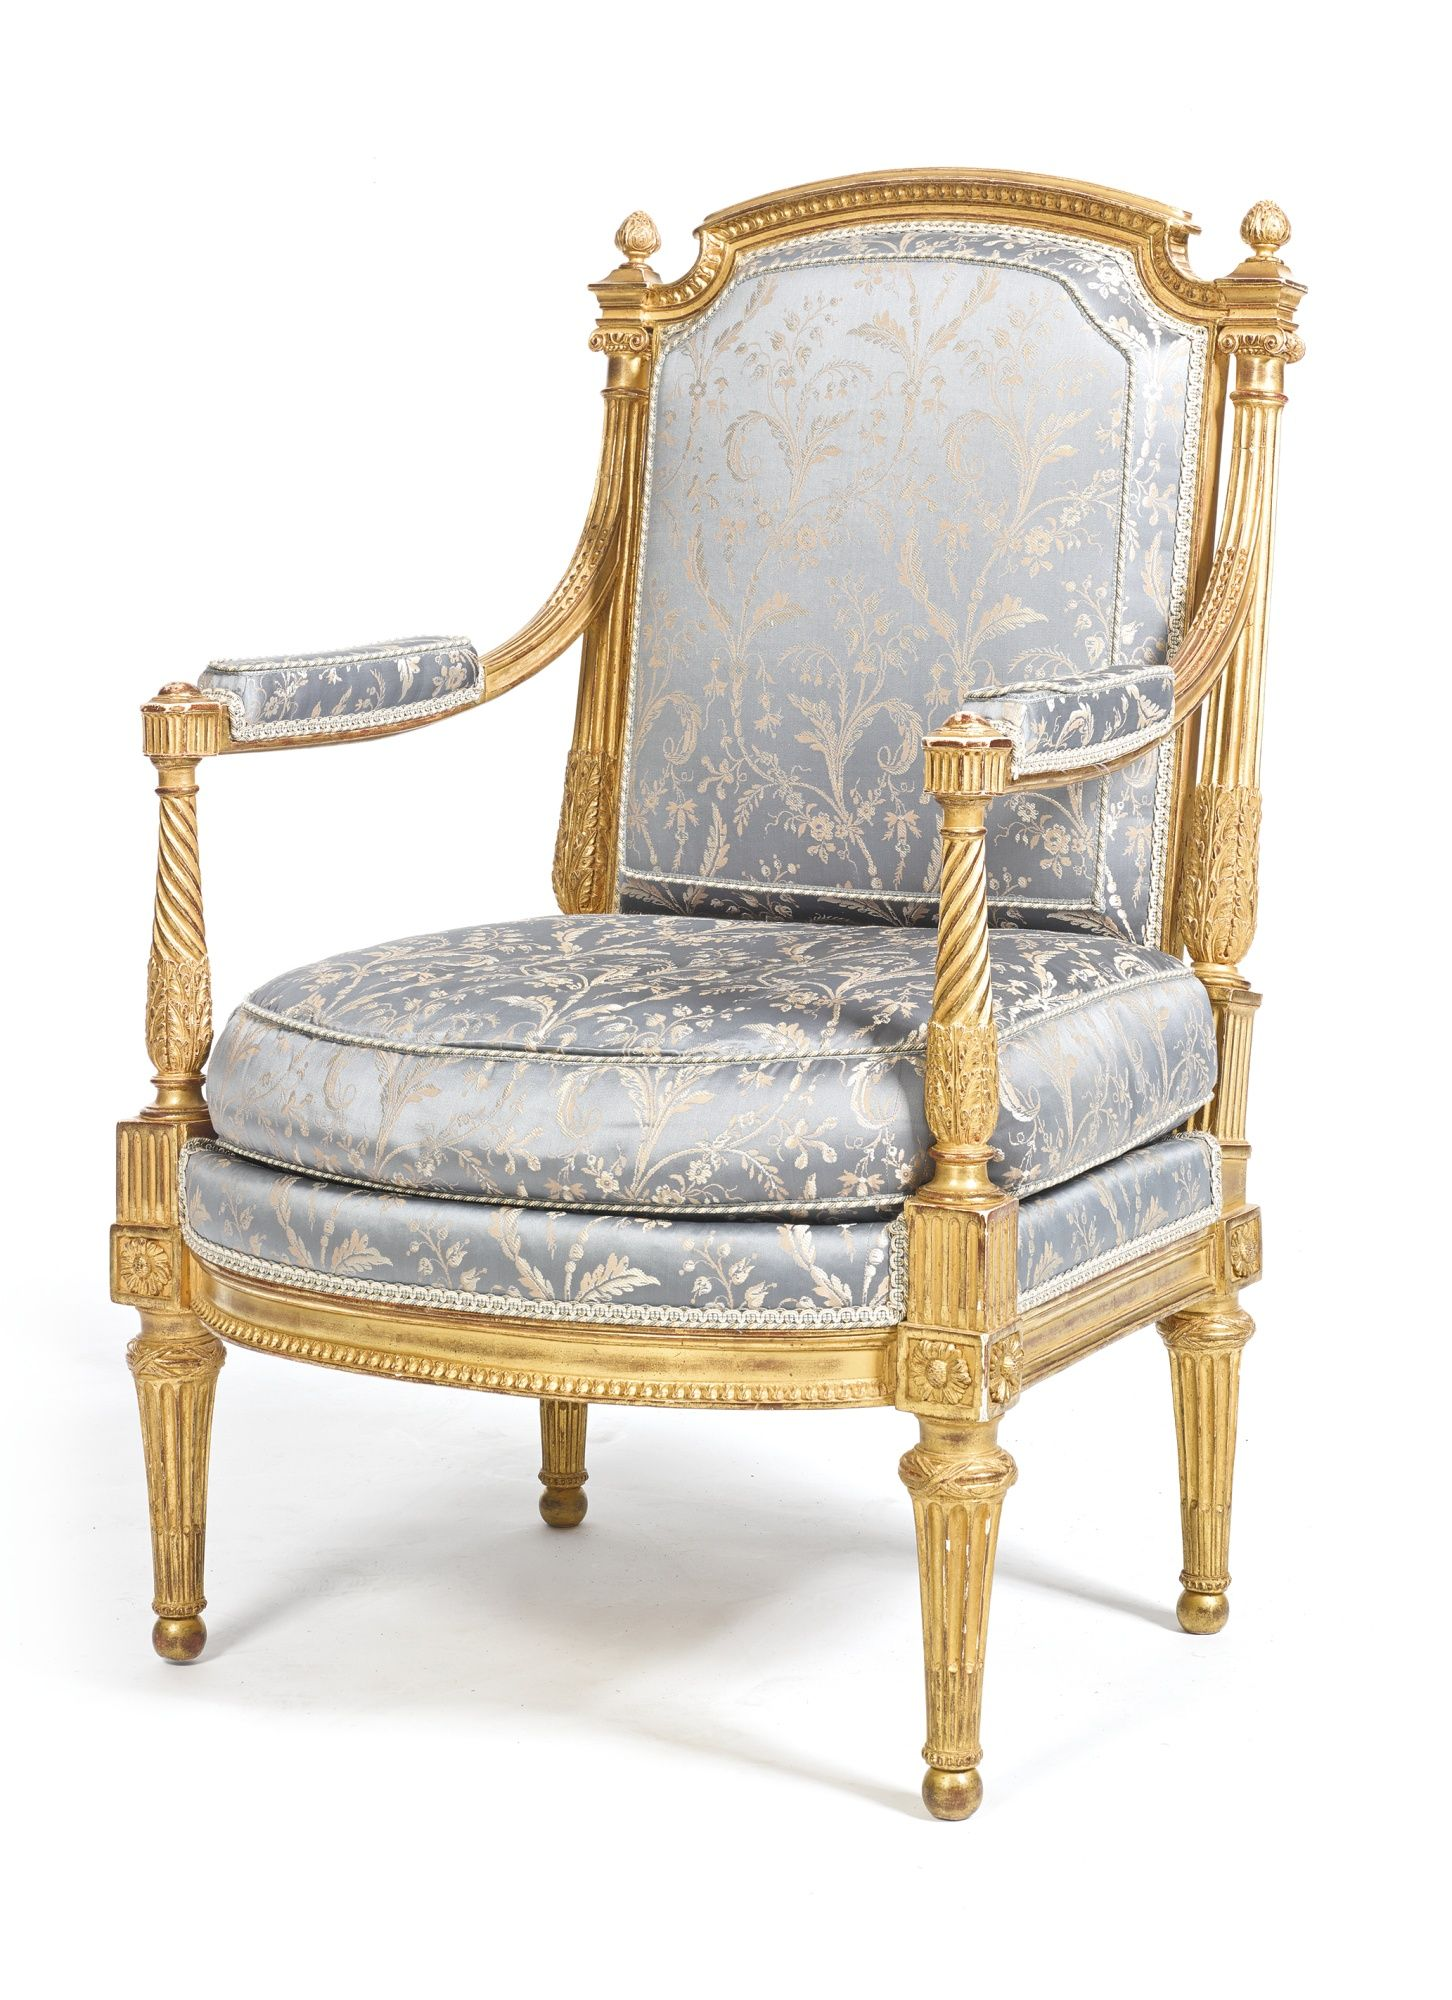 A Louis XVI carved giltwood fauteuil attributed to Georges Jacob ...